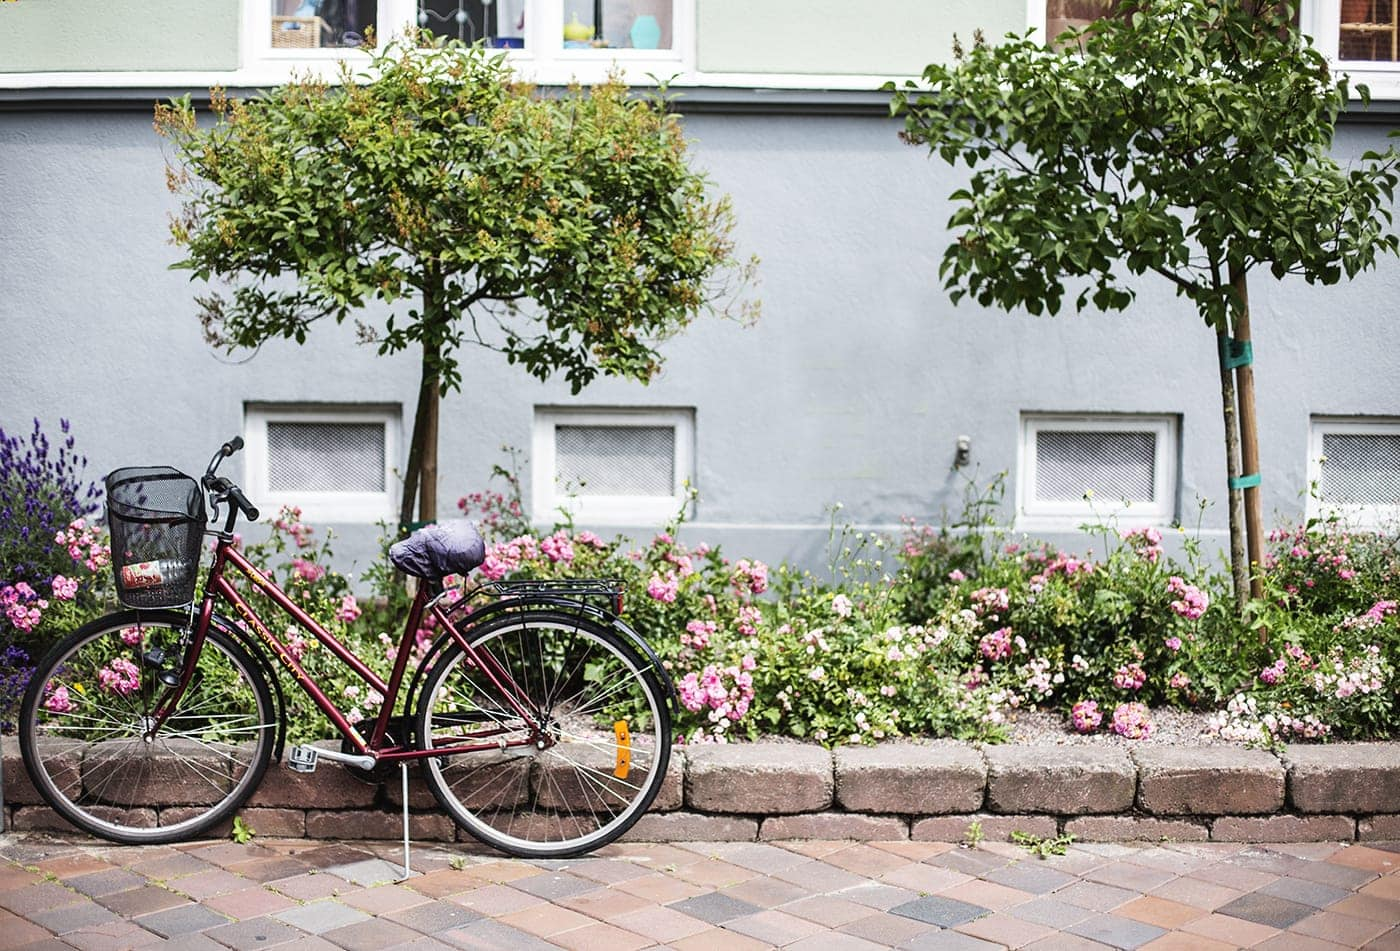 copenhagen-wanderlust-bicycles-and-flowers